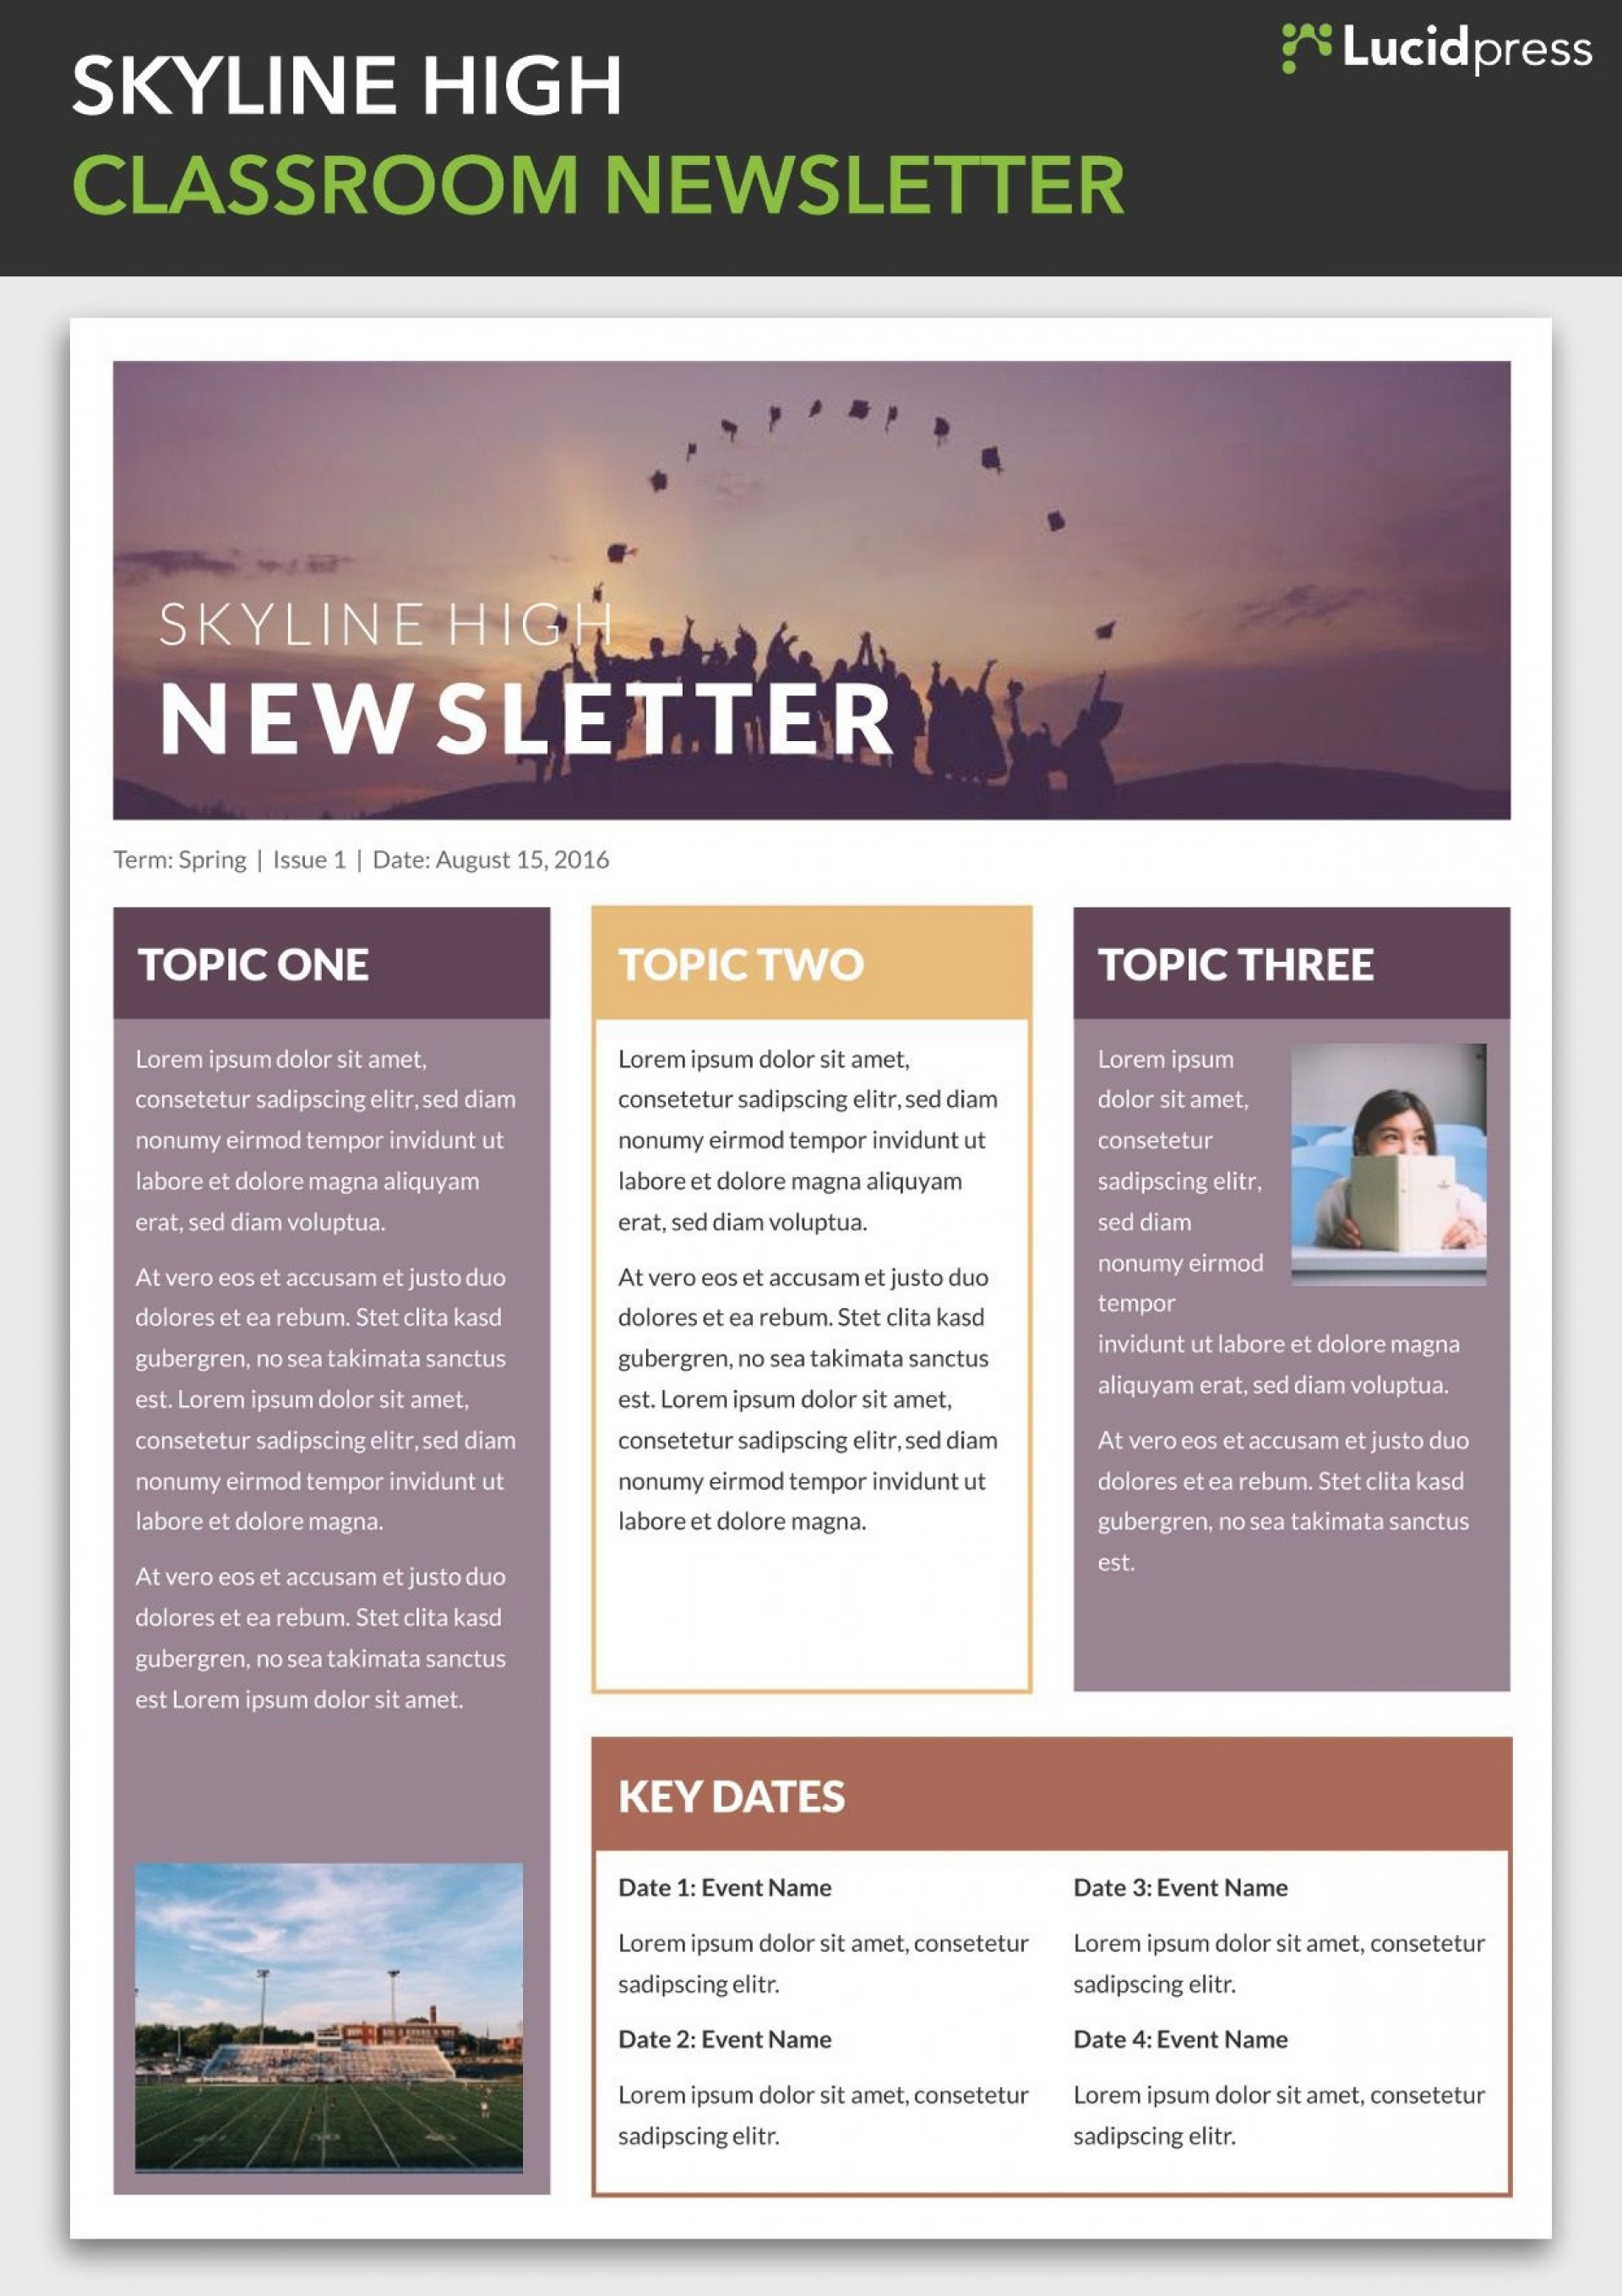 004 Simple School Newsletter Template Free Photo  Word Download Counselor1920